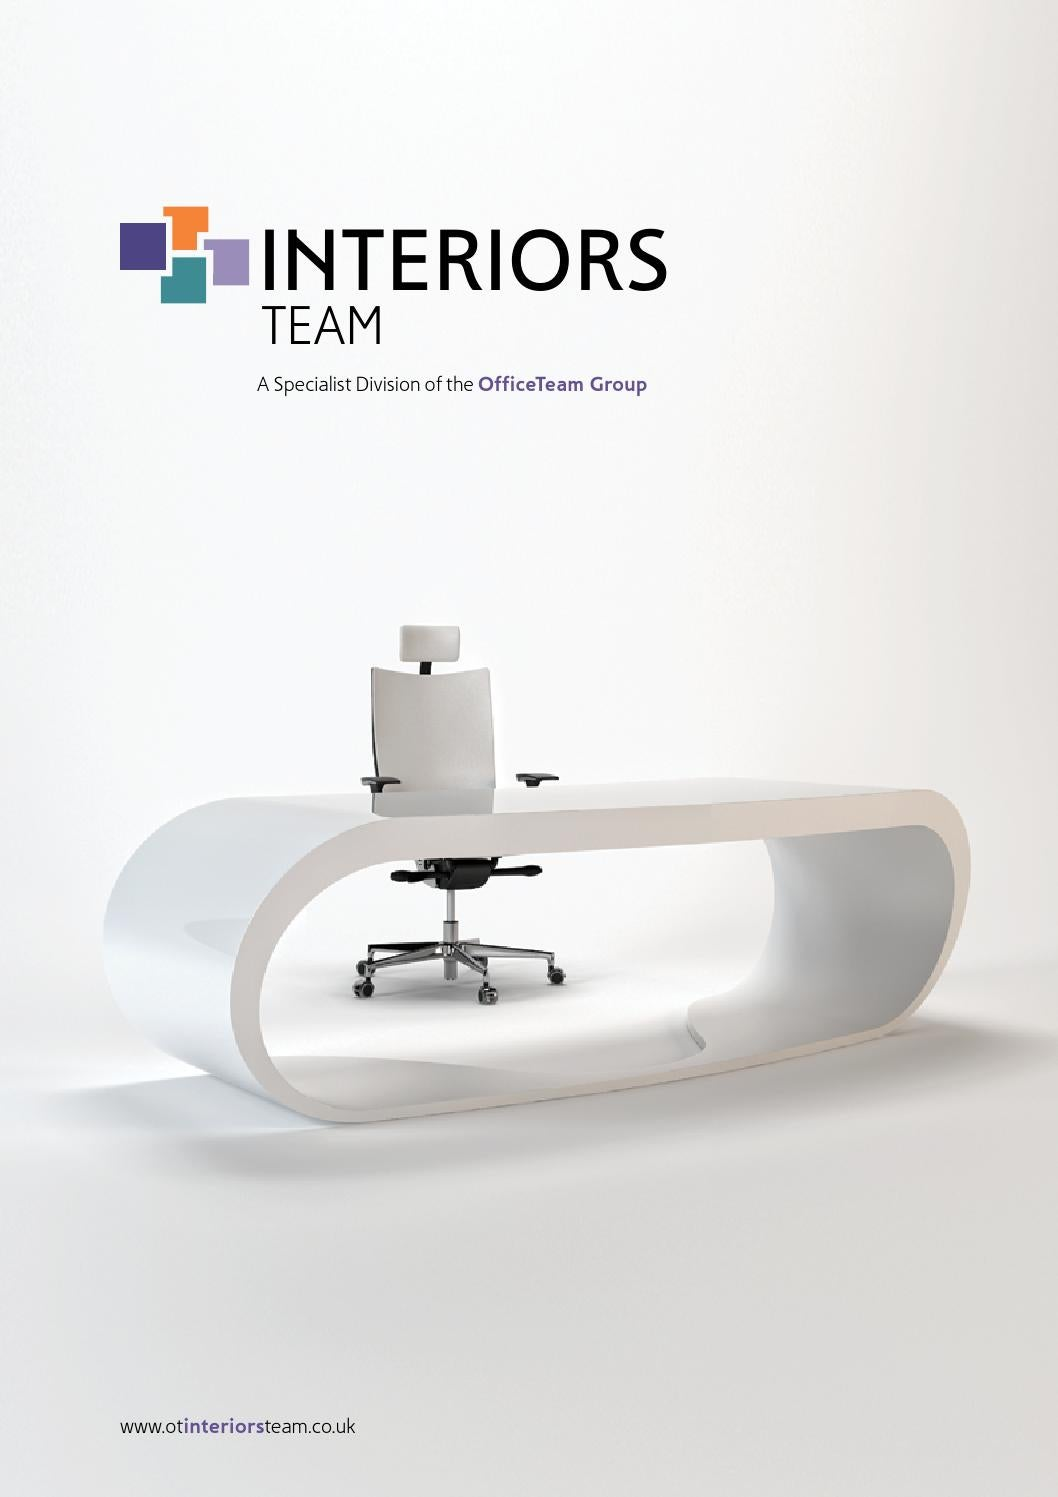 Interiorsteam office furniture catalogue 2014 by officeteam issuu